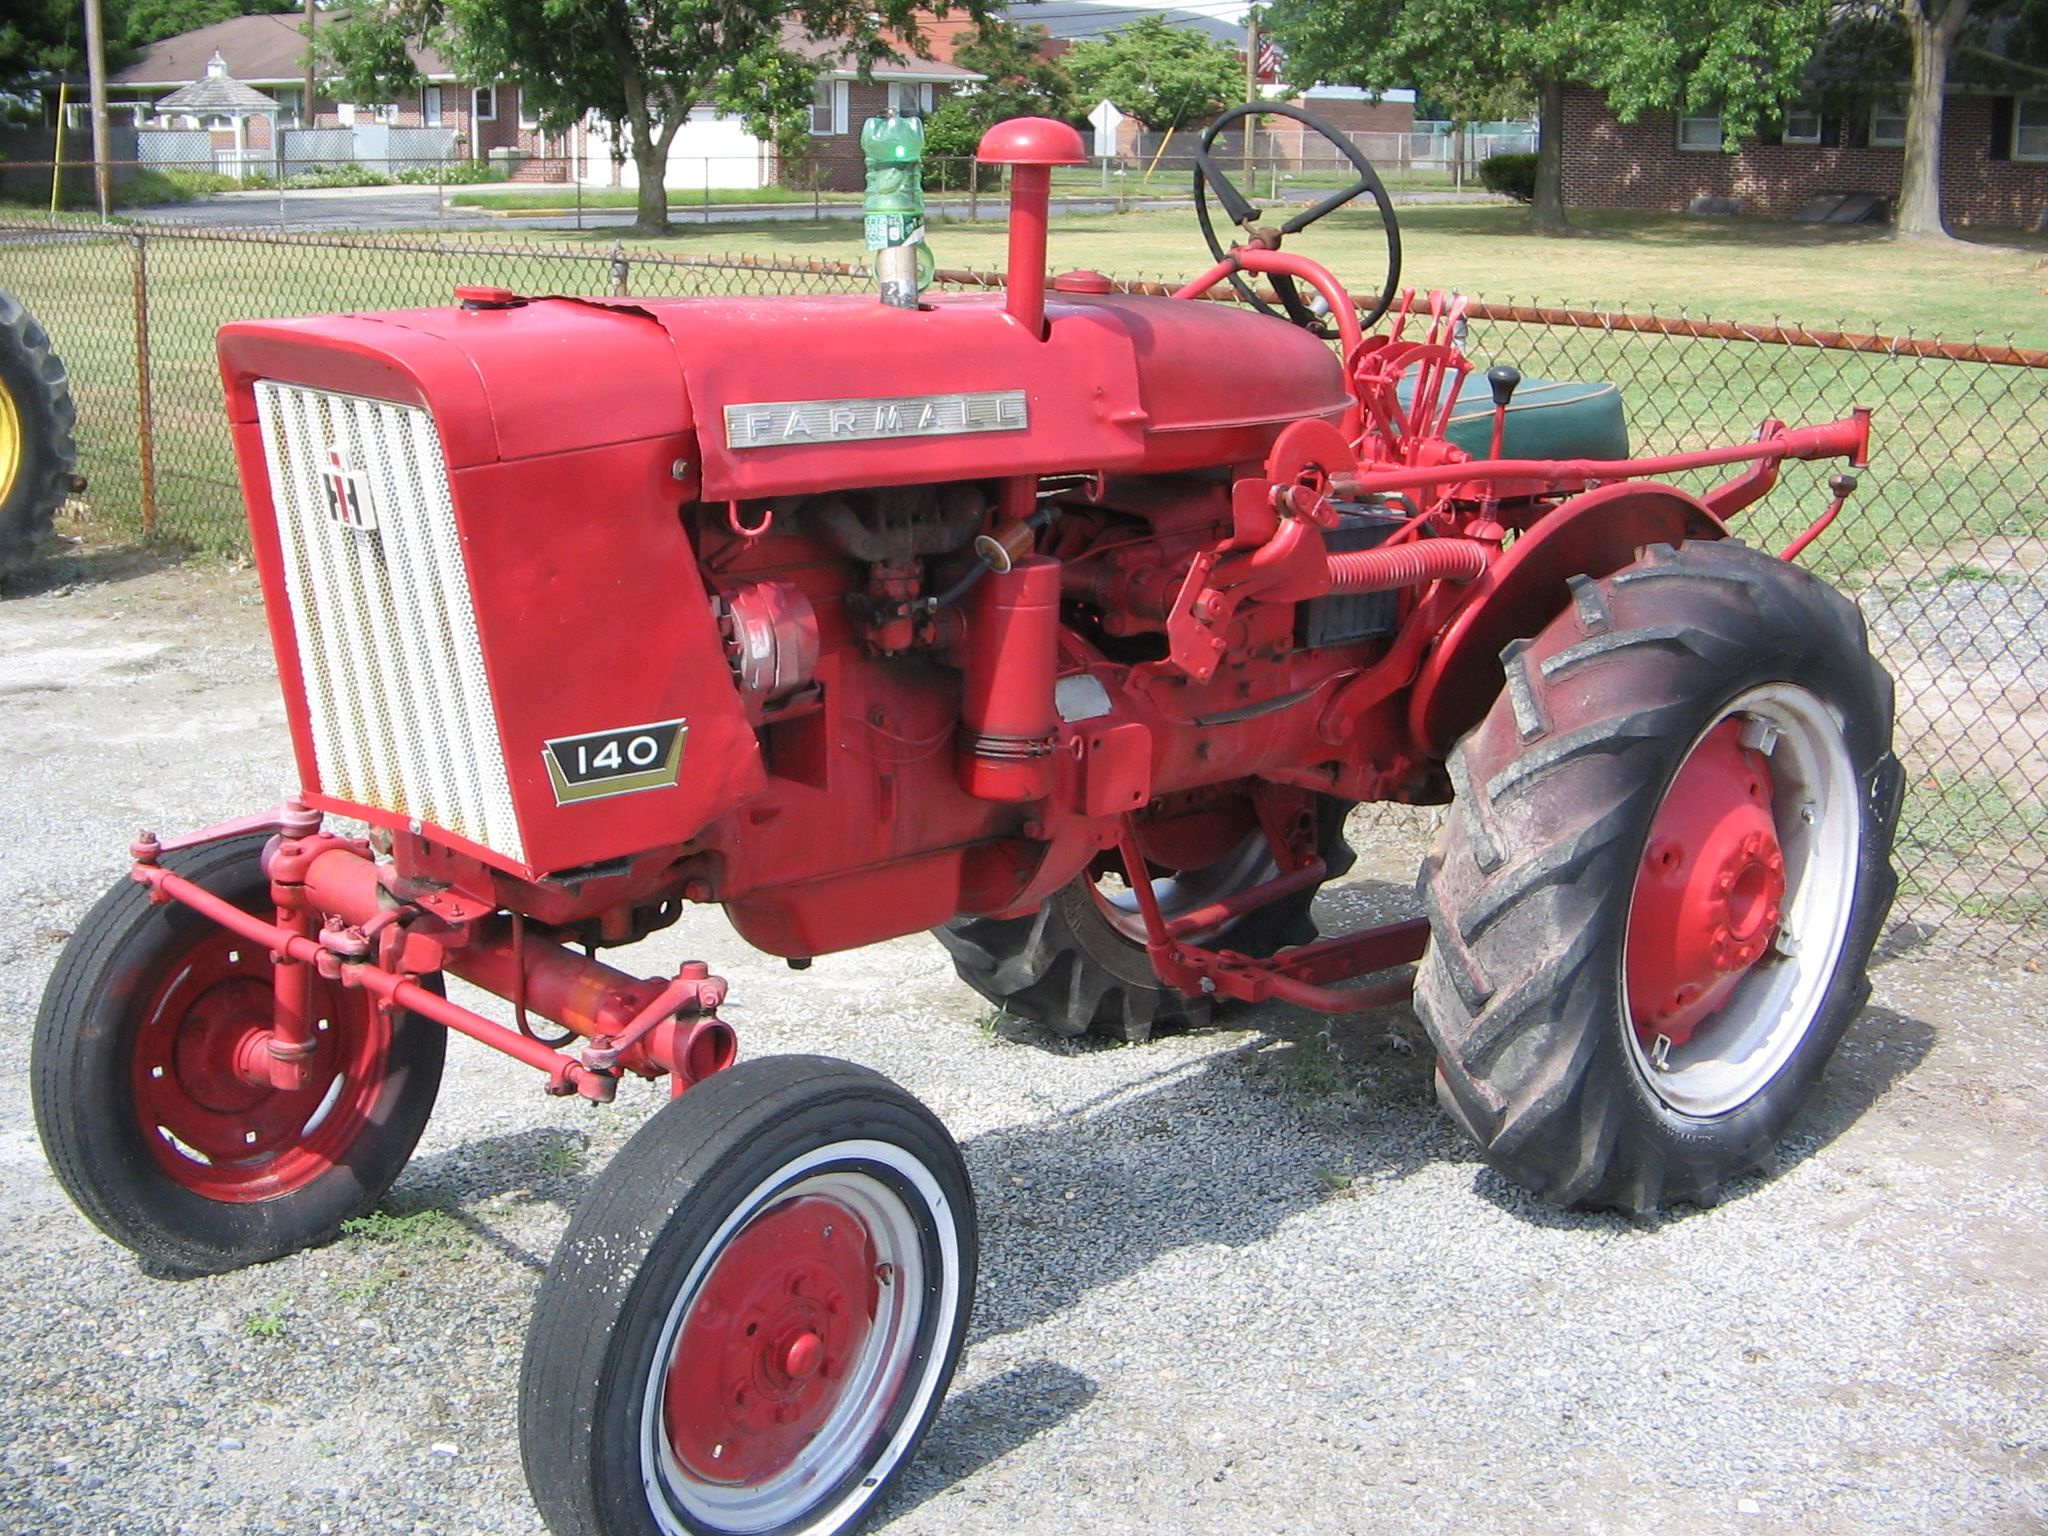 Farmall 140 Tractor : International farmall ☼ tractor mania pinterest